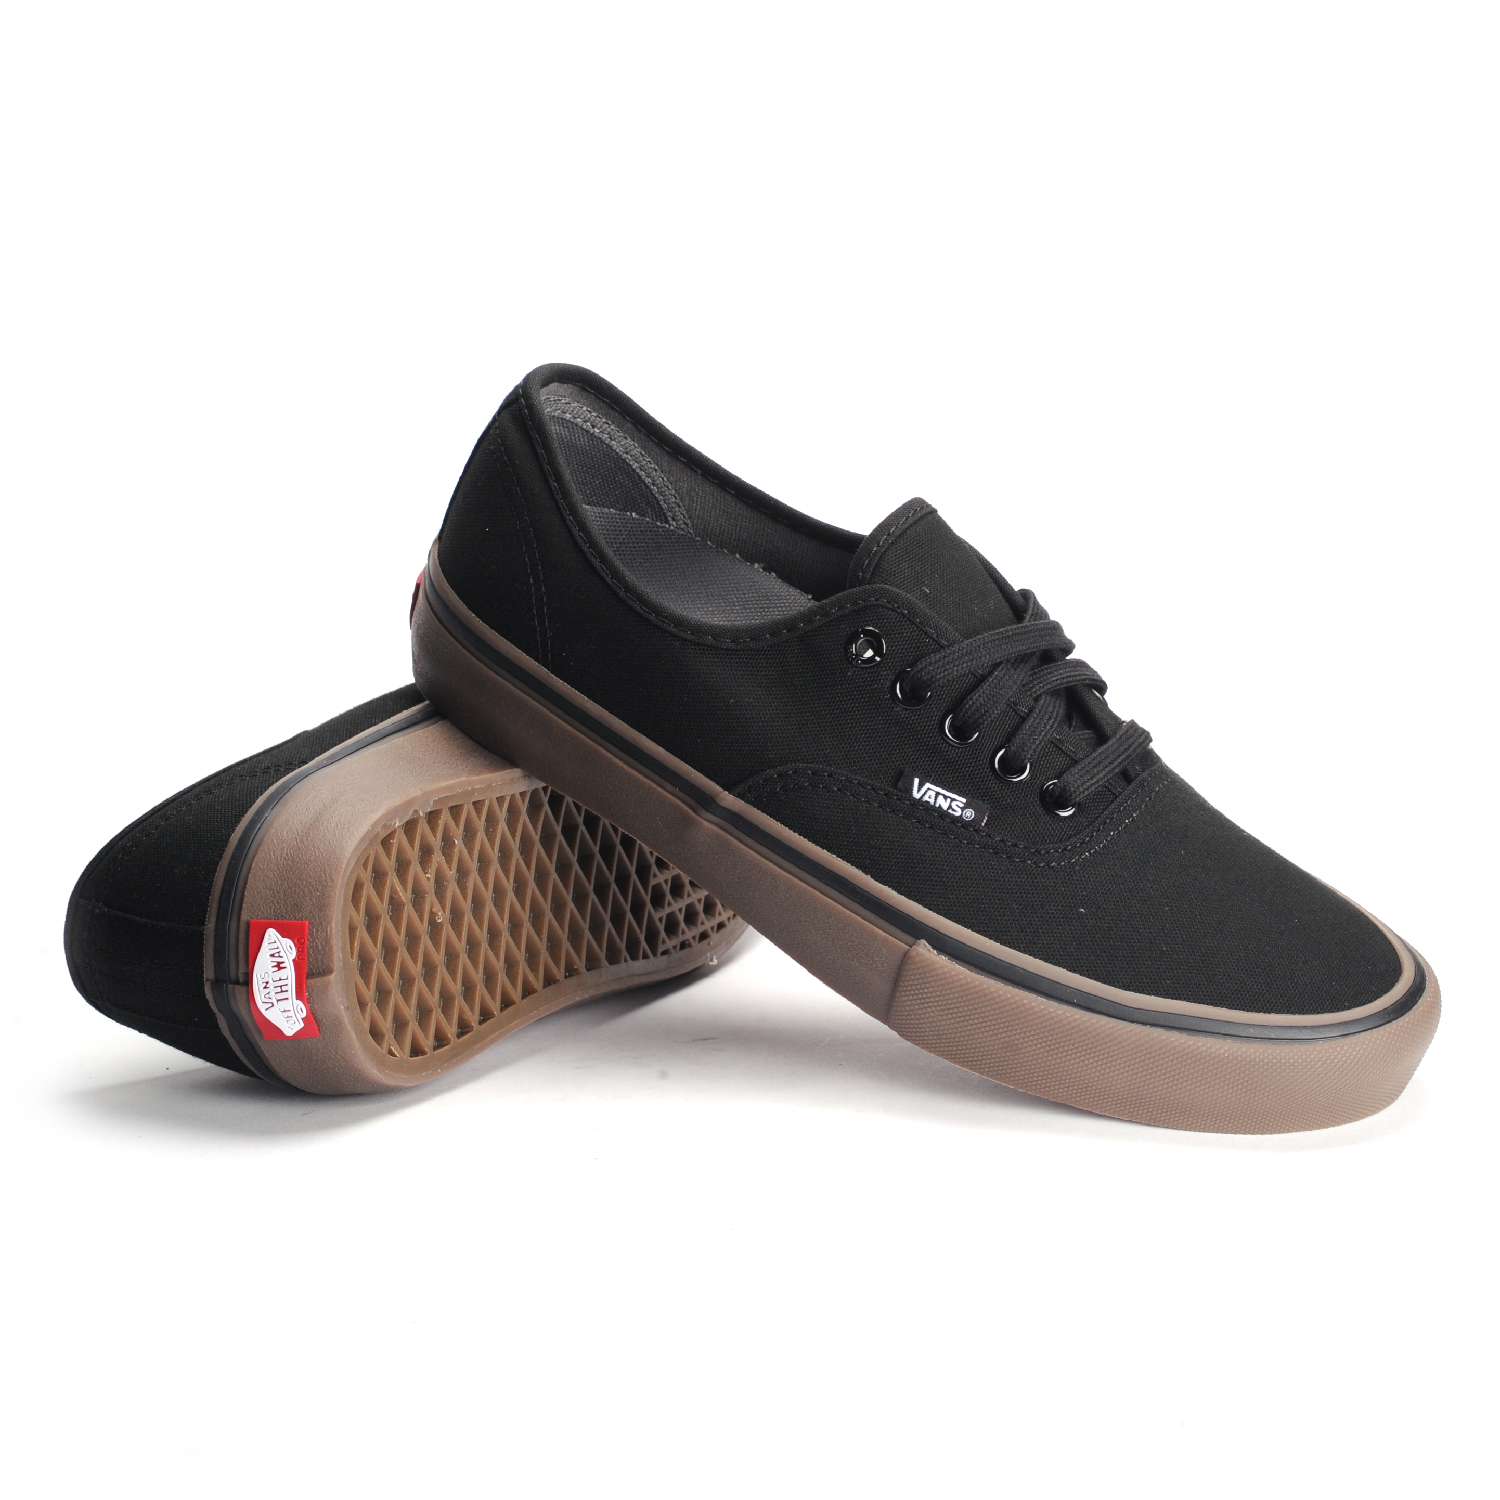 Vans Authentic Zapatos Zapatos Authentic Authentic Zapatos Vans Vans Authentic Zapatos Vans Authentic Zapatos Zapatos Vans b7ygY6f